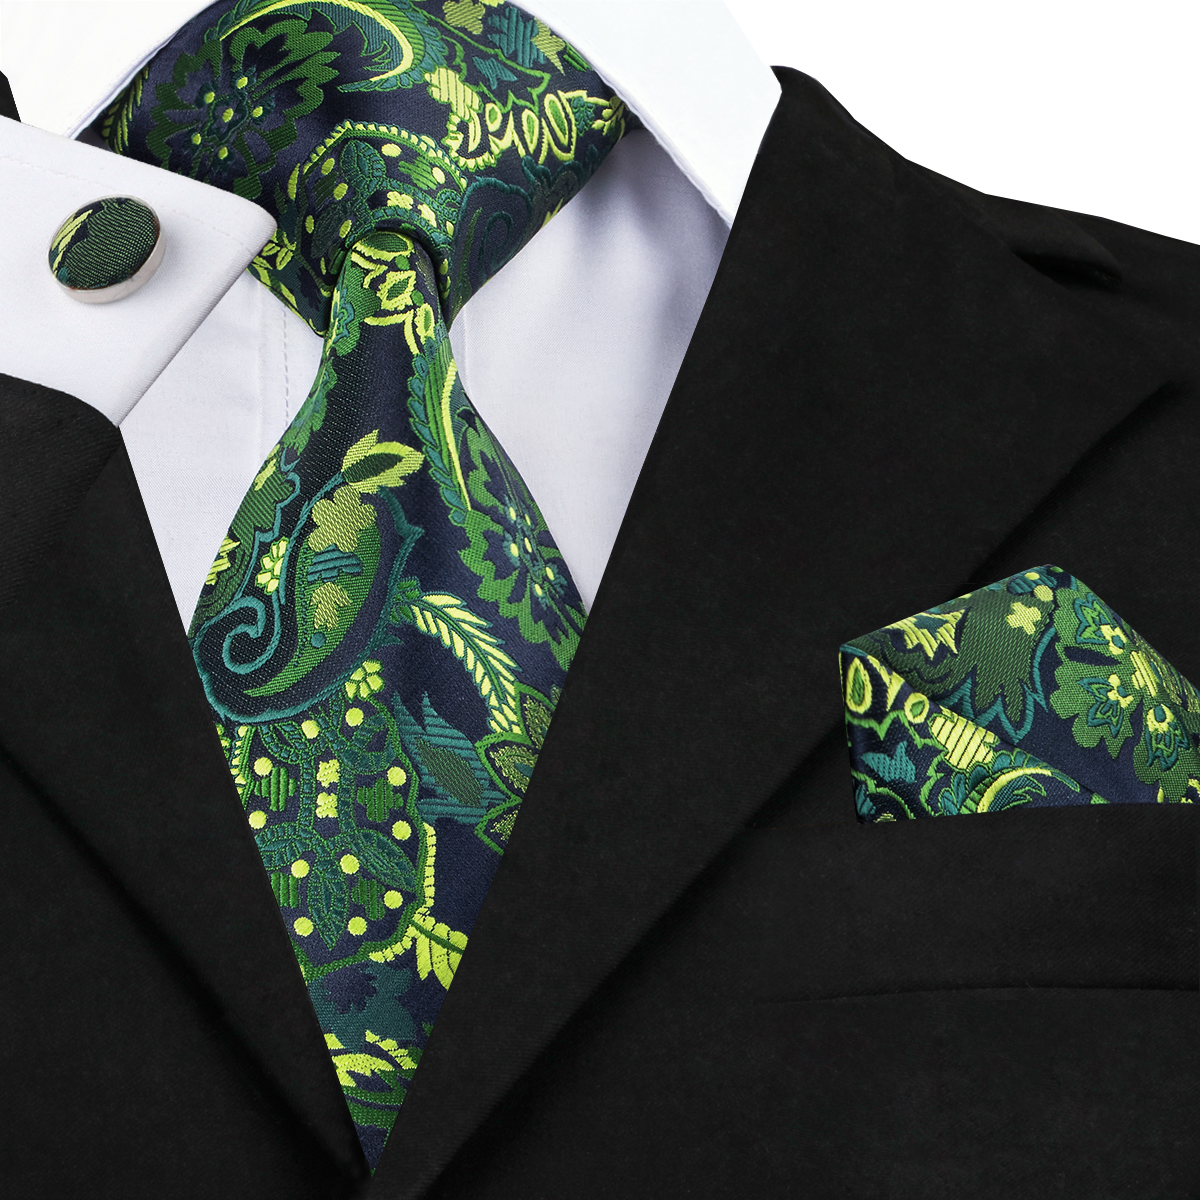 C-1444 New Arrival Green Floral Jacquare Woven Ties For Men Silk Tie High Quality Men's Necktie Pocket Square Hanky Cufflinks